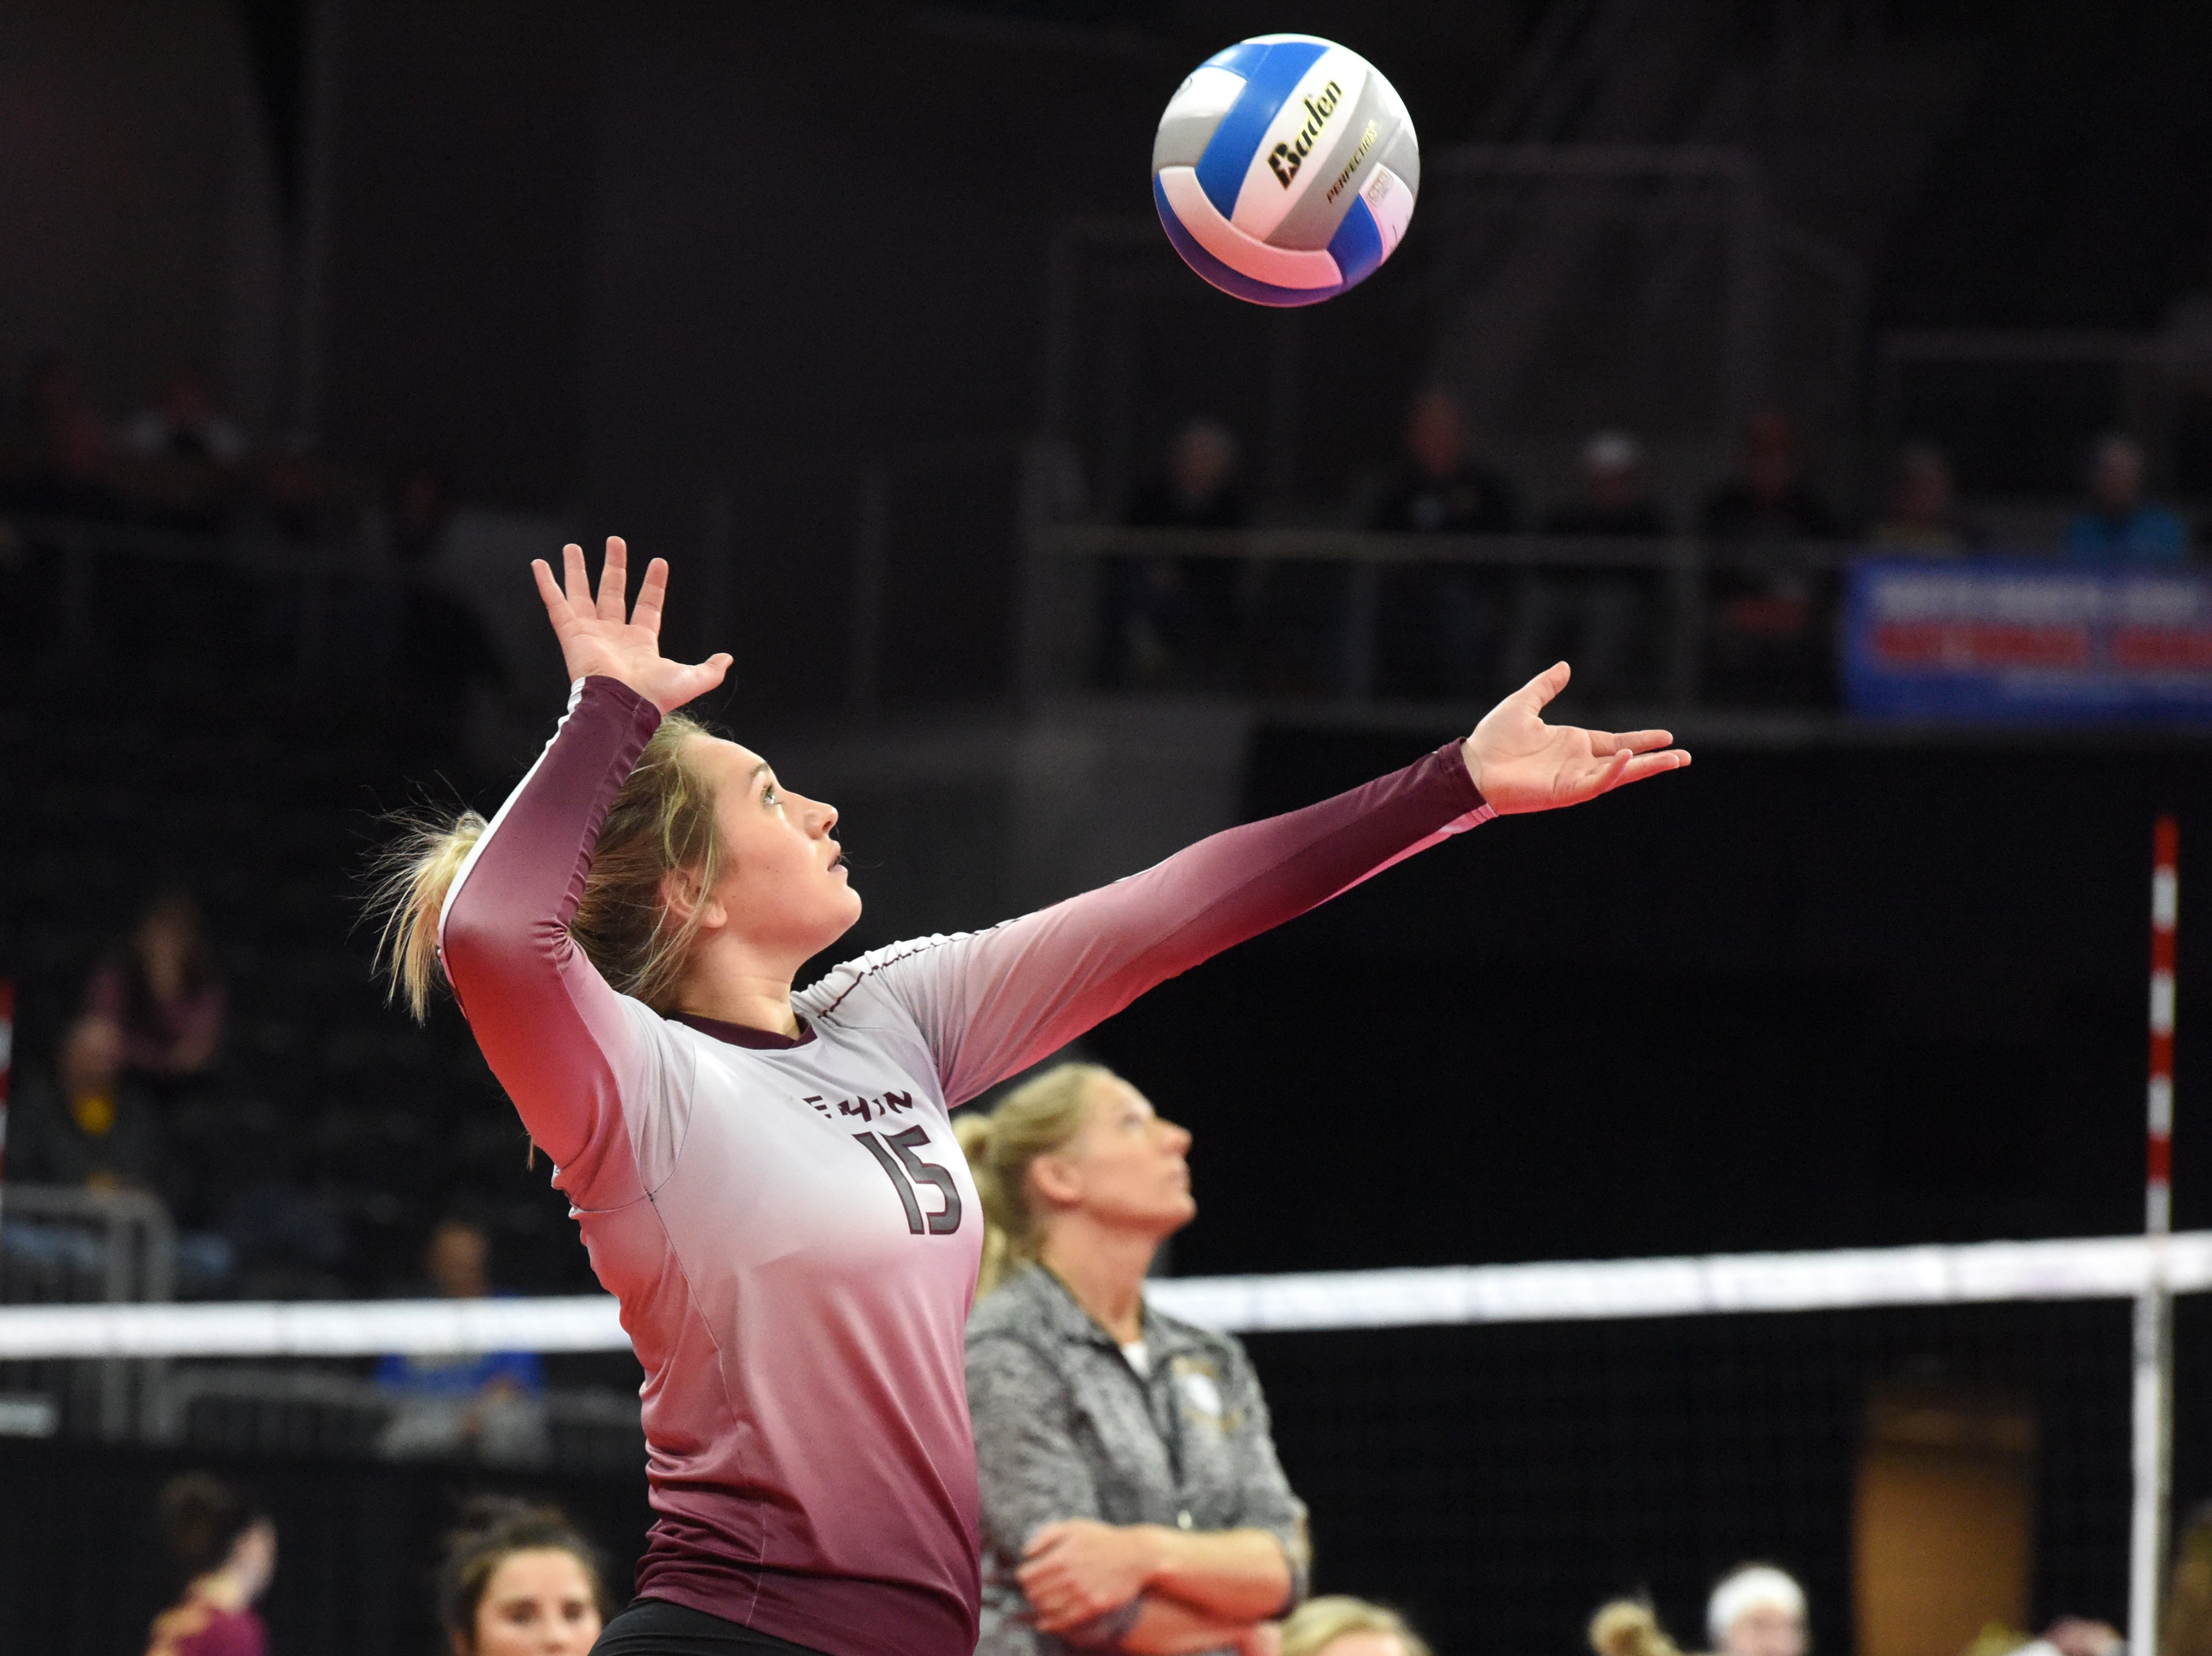 Ethan's Cameryn Logan (15) serves the ball during a match against Burke, Friday, Nov. 16, 2018, at the Denny Sanford Premier Center in Sioux Falls, S.D.